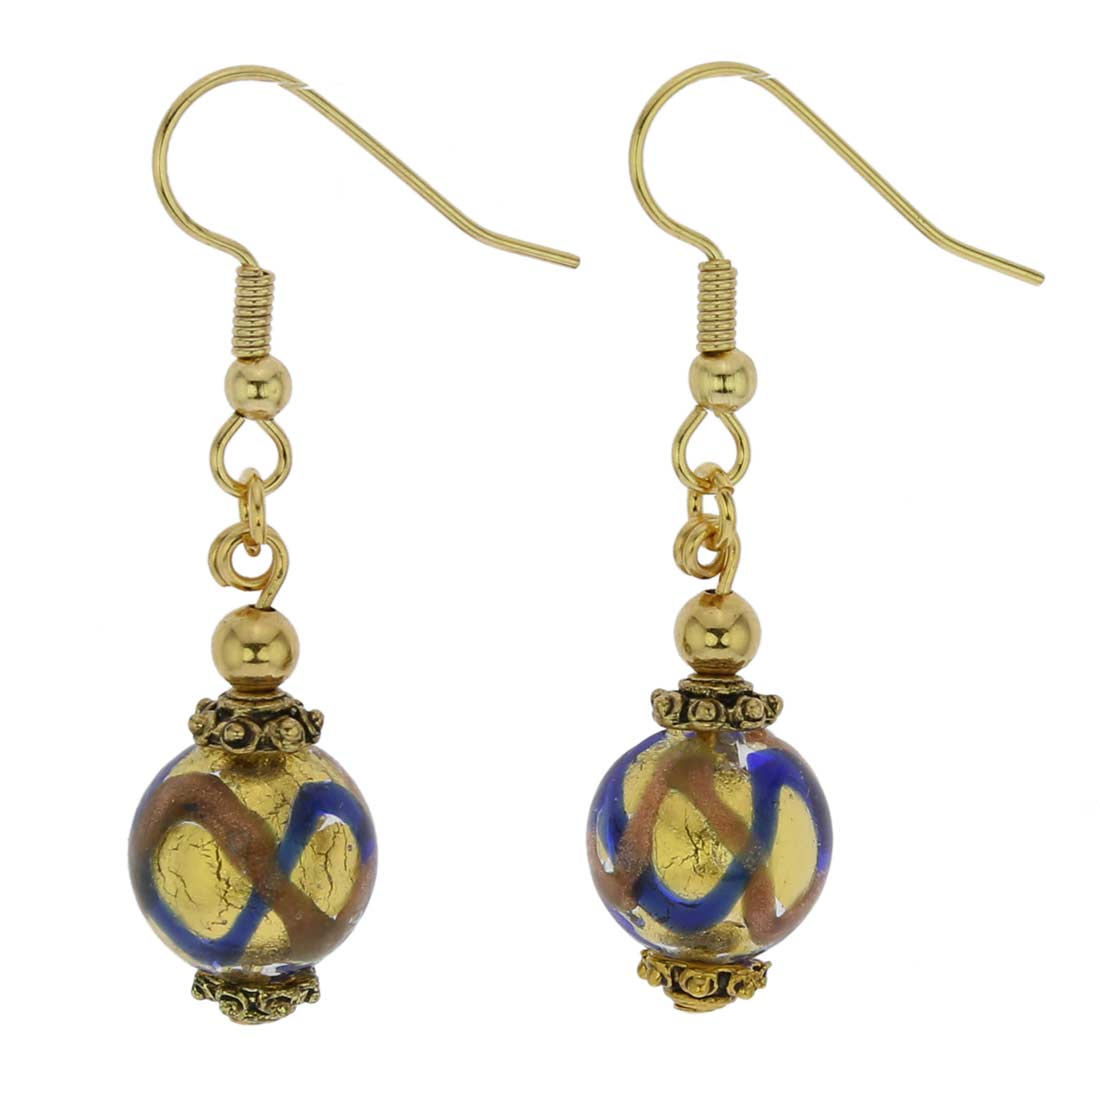 Antico Tesoro Balls Earrings - Blue Waves Gold